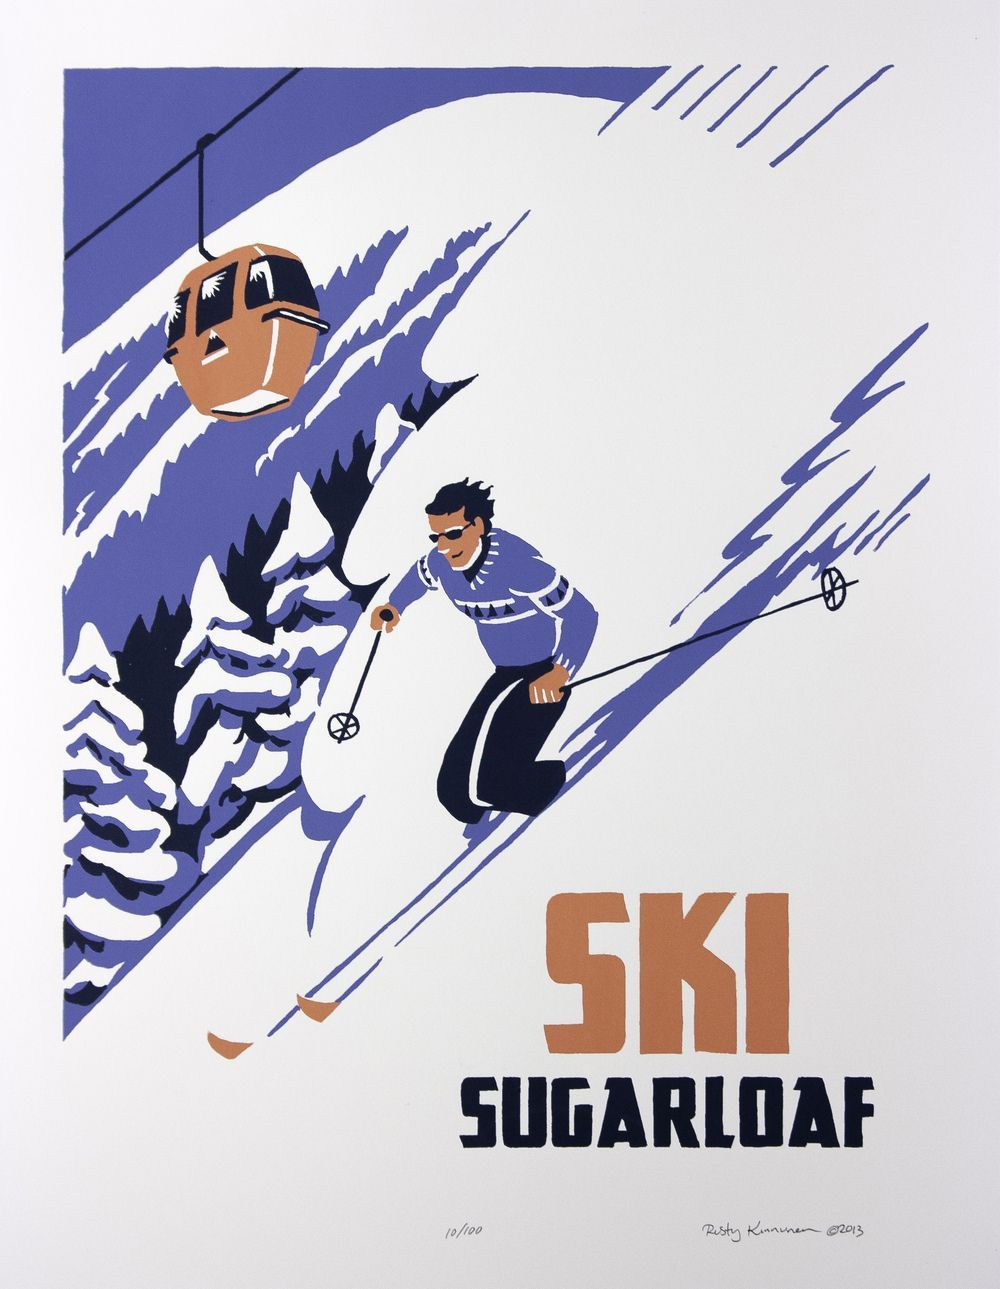 Sugarloaf This is a signed, limited edition, hand-made screen print in the style of  of a vintage-style ski poster.The first in our original